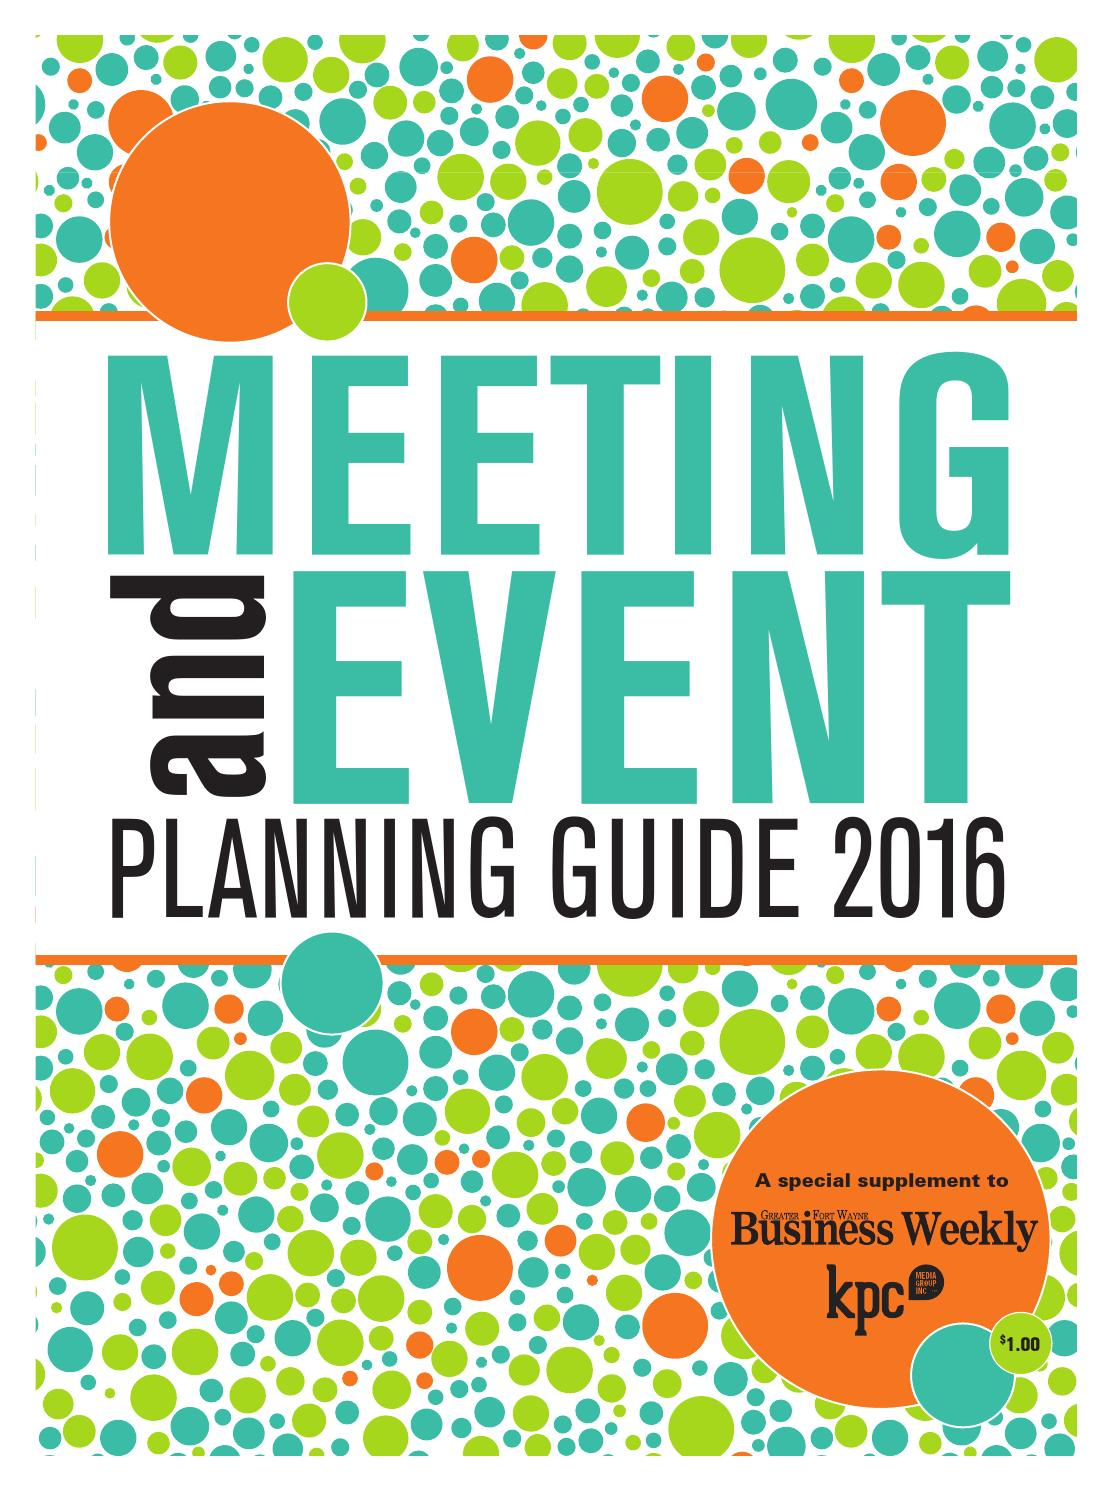 event planners guide - 4 - event planning checklist  this checklist is meant to be an optional guide to aid in planning your group event please feel free to add or delete items from the list as needed.